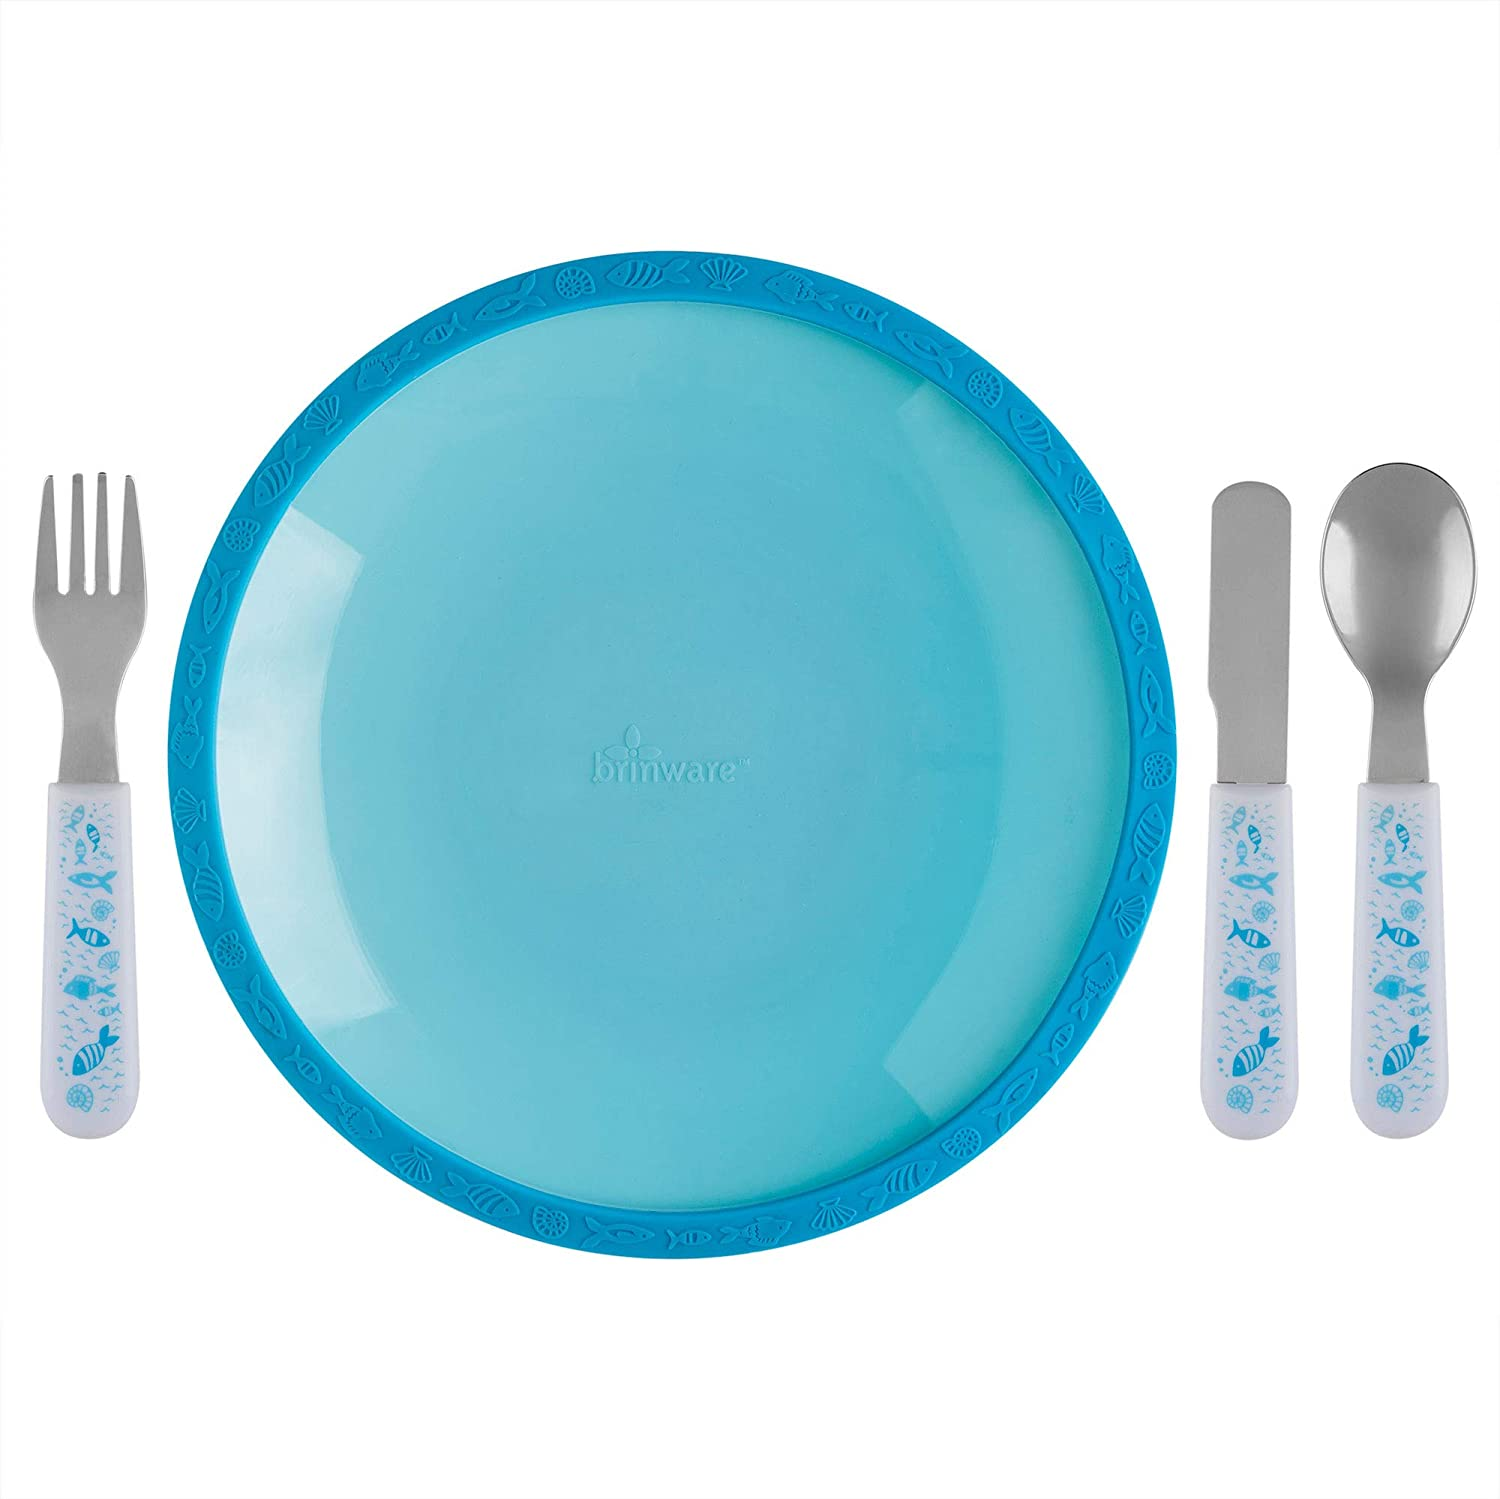 Brinware Tempered Glass and Silicone Plates for Toddlers - Grip Dish with Stainless Steel Utensils (5 Piece) Set Kids Dinnerware Non-Toxic Plate, Spoon, Fork, and Knife Place Setting (Blue)